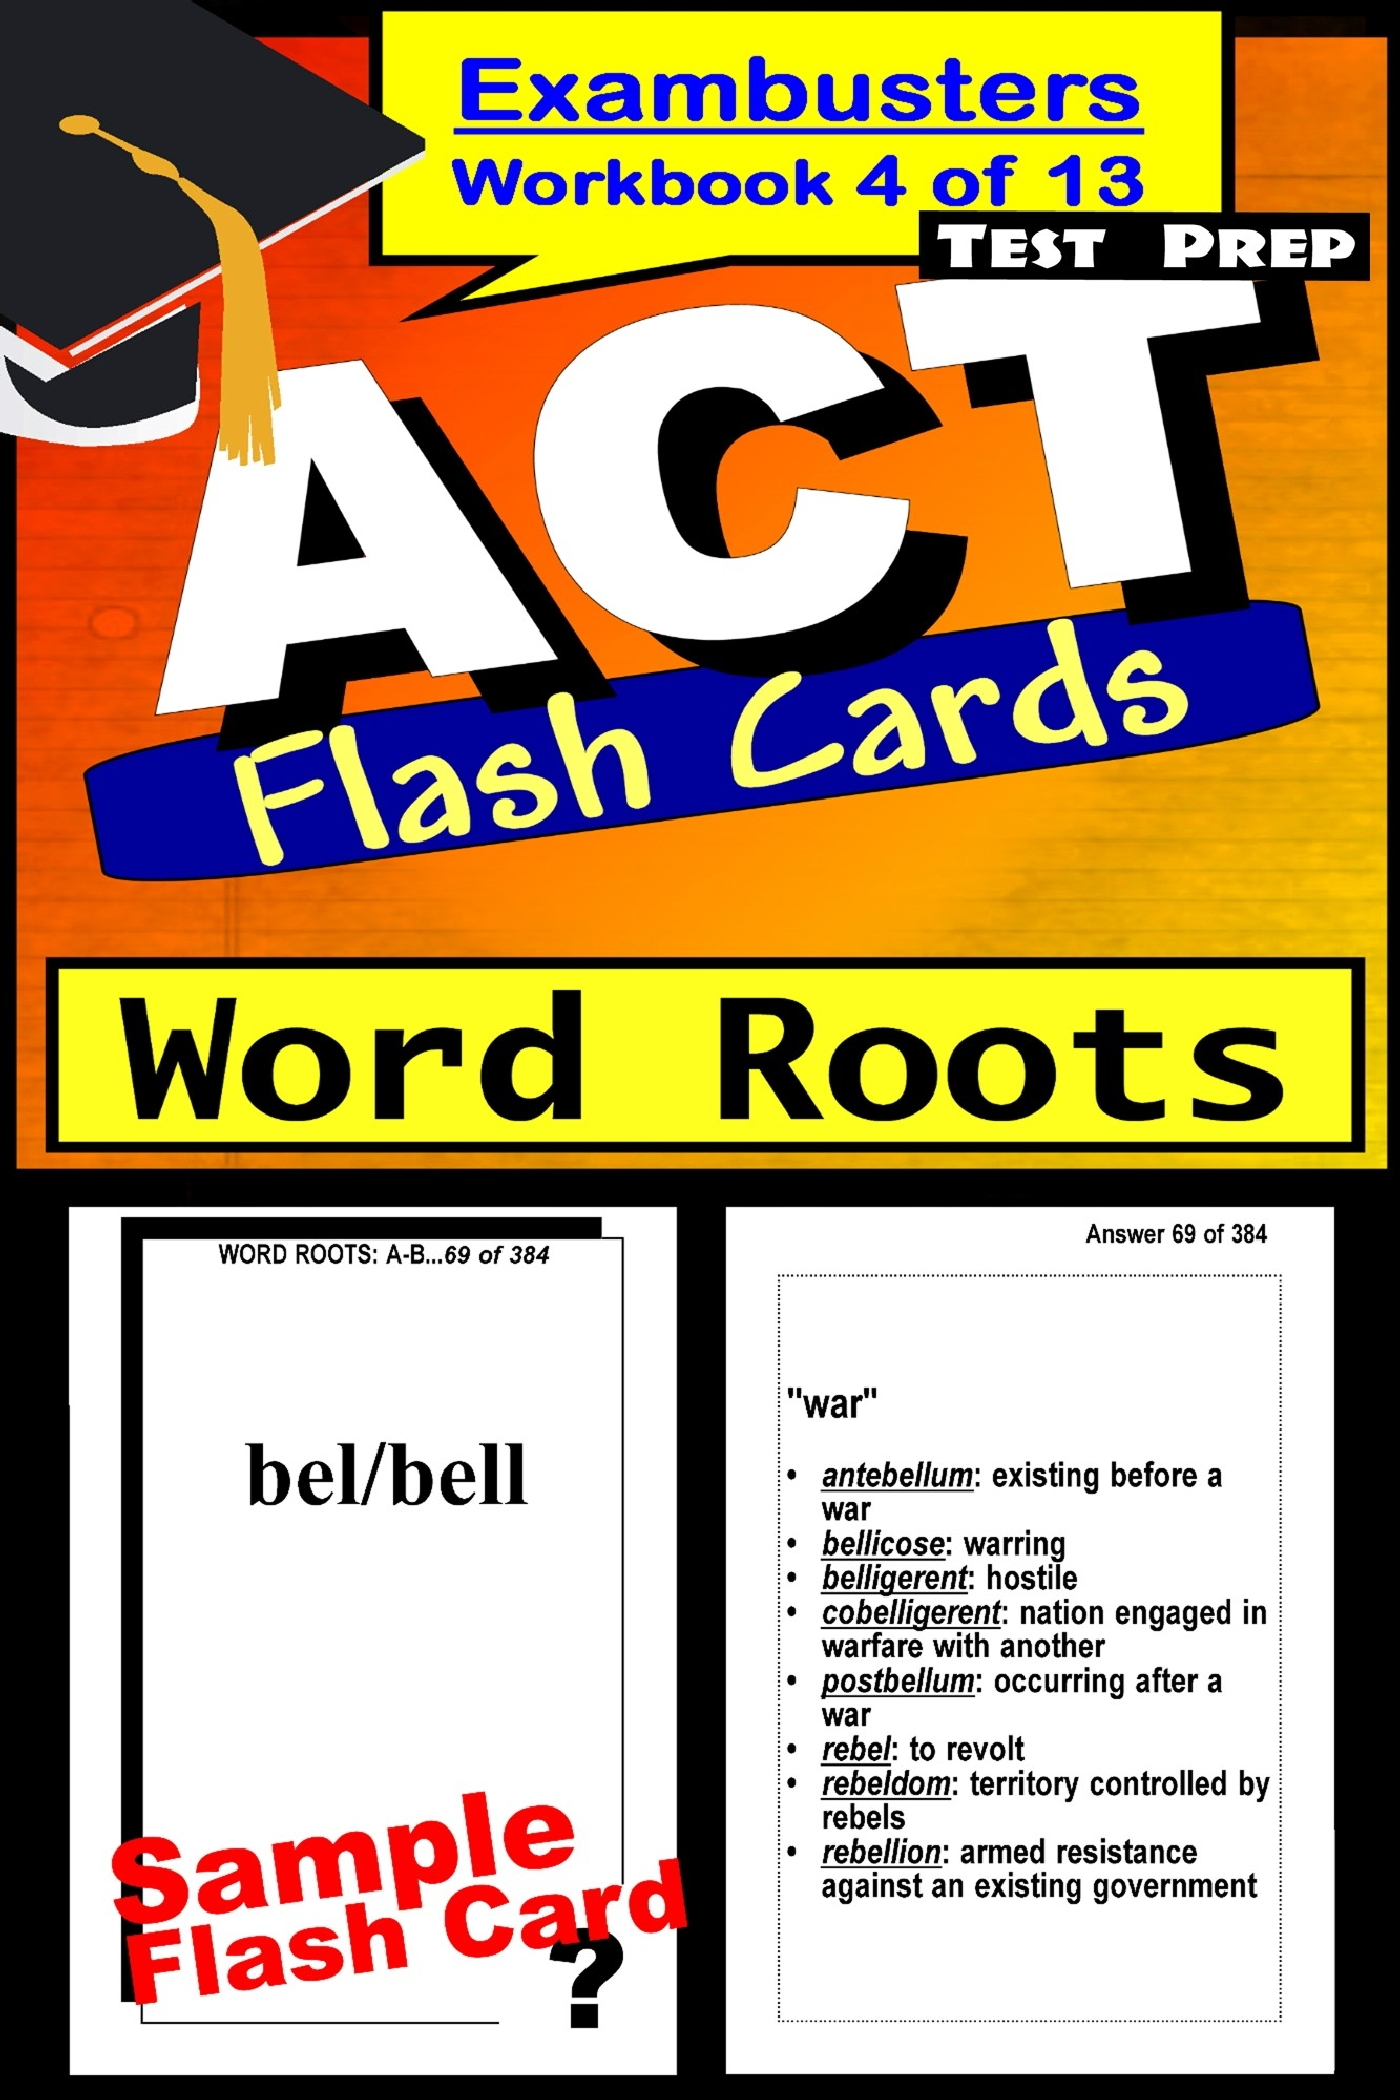 Act Test Prep Word Roots Review Exambusters Flash Cards